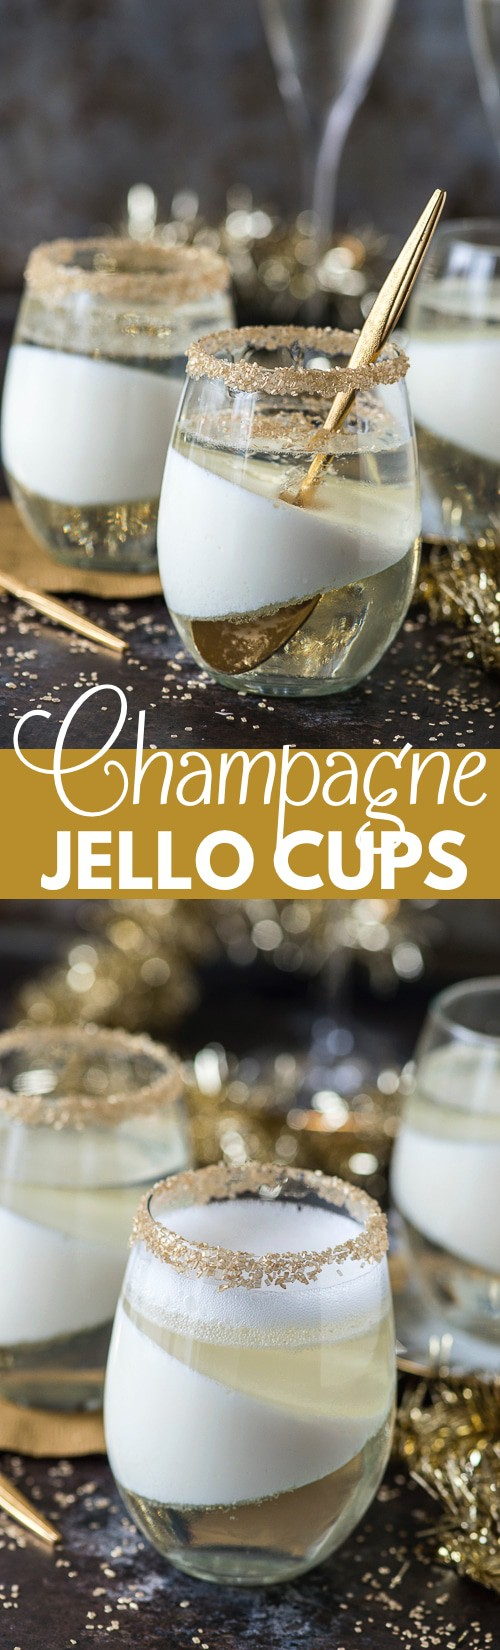 Easy champagne jello recipe that would be a perfect champagne dessert for New Year's Eve! #champagnejelloshots #newyearsevedessert